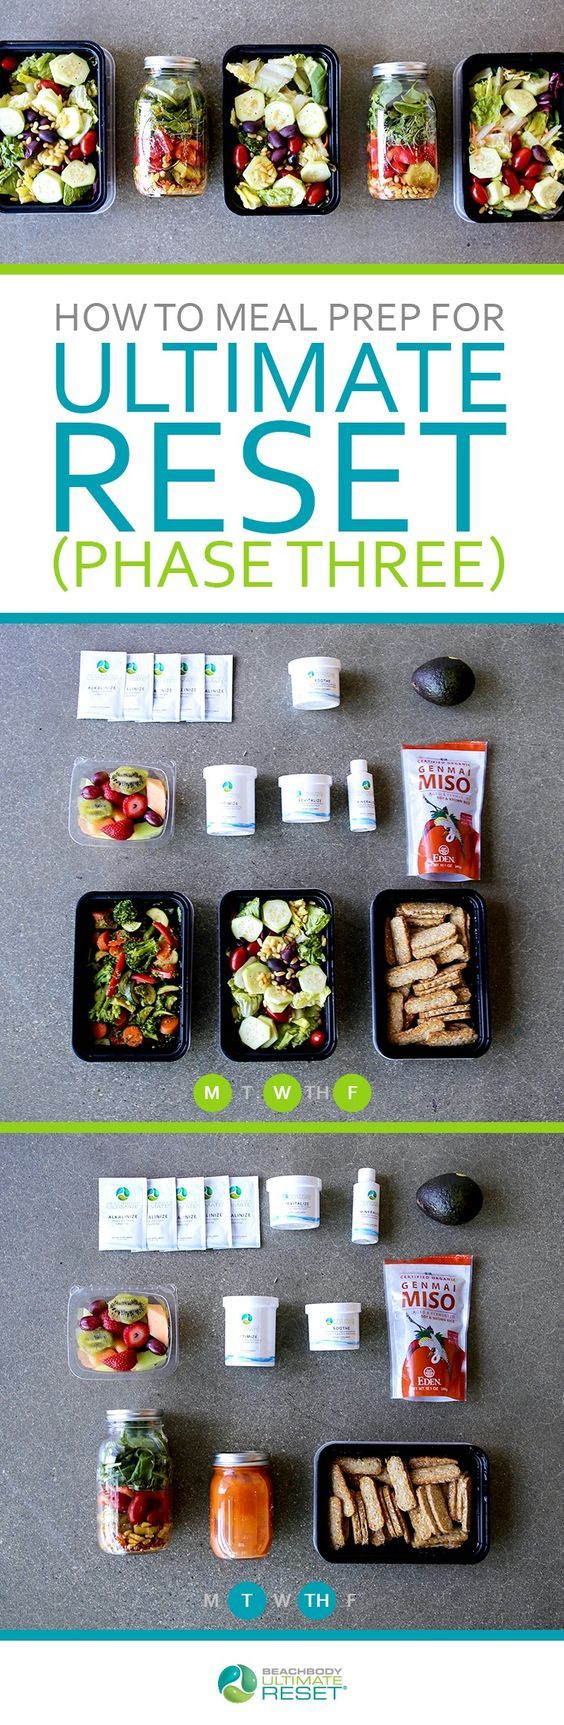 In Phase Three of the Ultimate Reset, you'll refine your diet by cutting back on grains and eating mainly fruits and vegetables. This guide will help you make your meals for the next five days. // meal prep // meal planning // meal prepping // Ultimate Reset // vegan // Beachbody // BeachbodyBlog.com